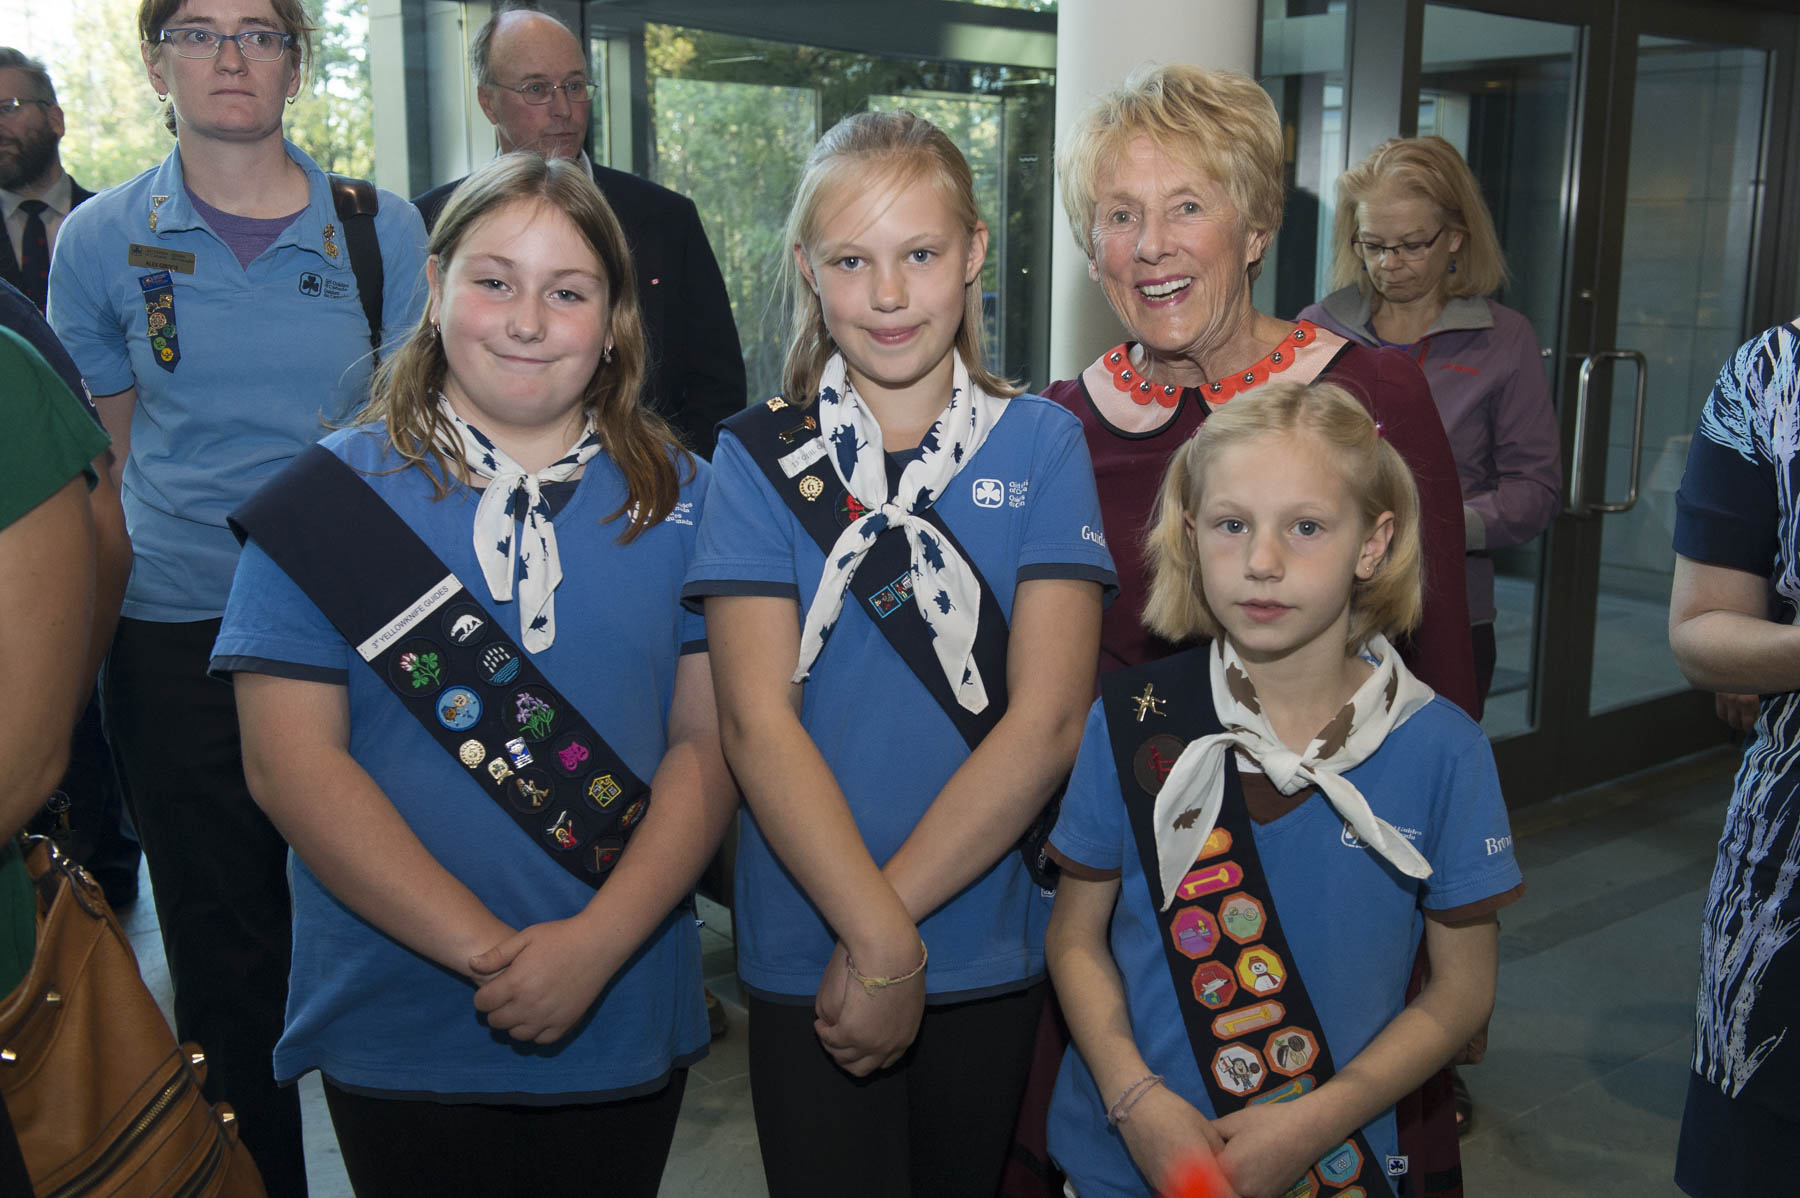 During the reception Mrs. Johnston made friends with a group of Girl Guides.